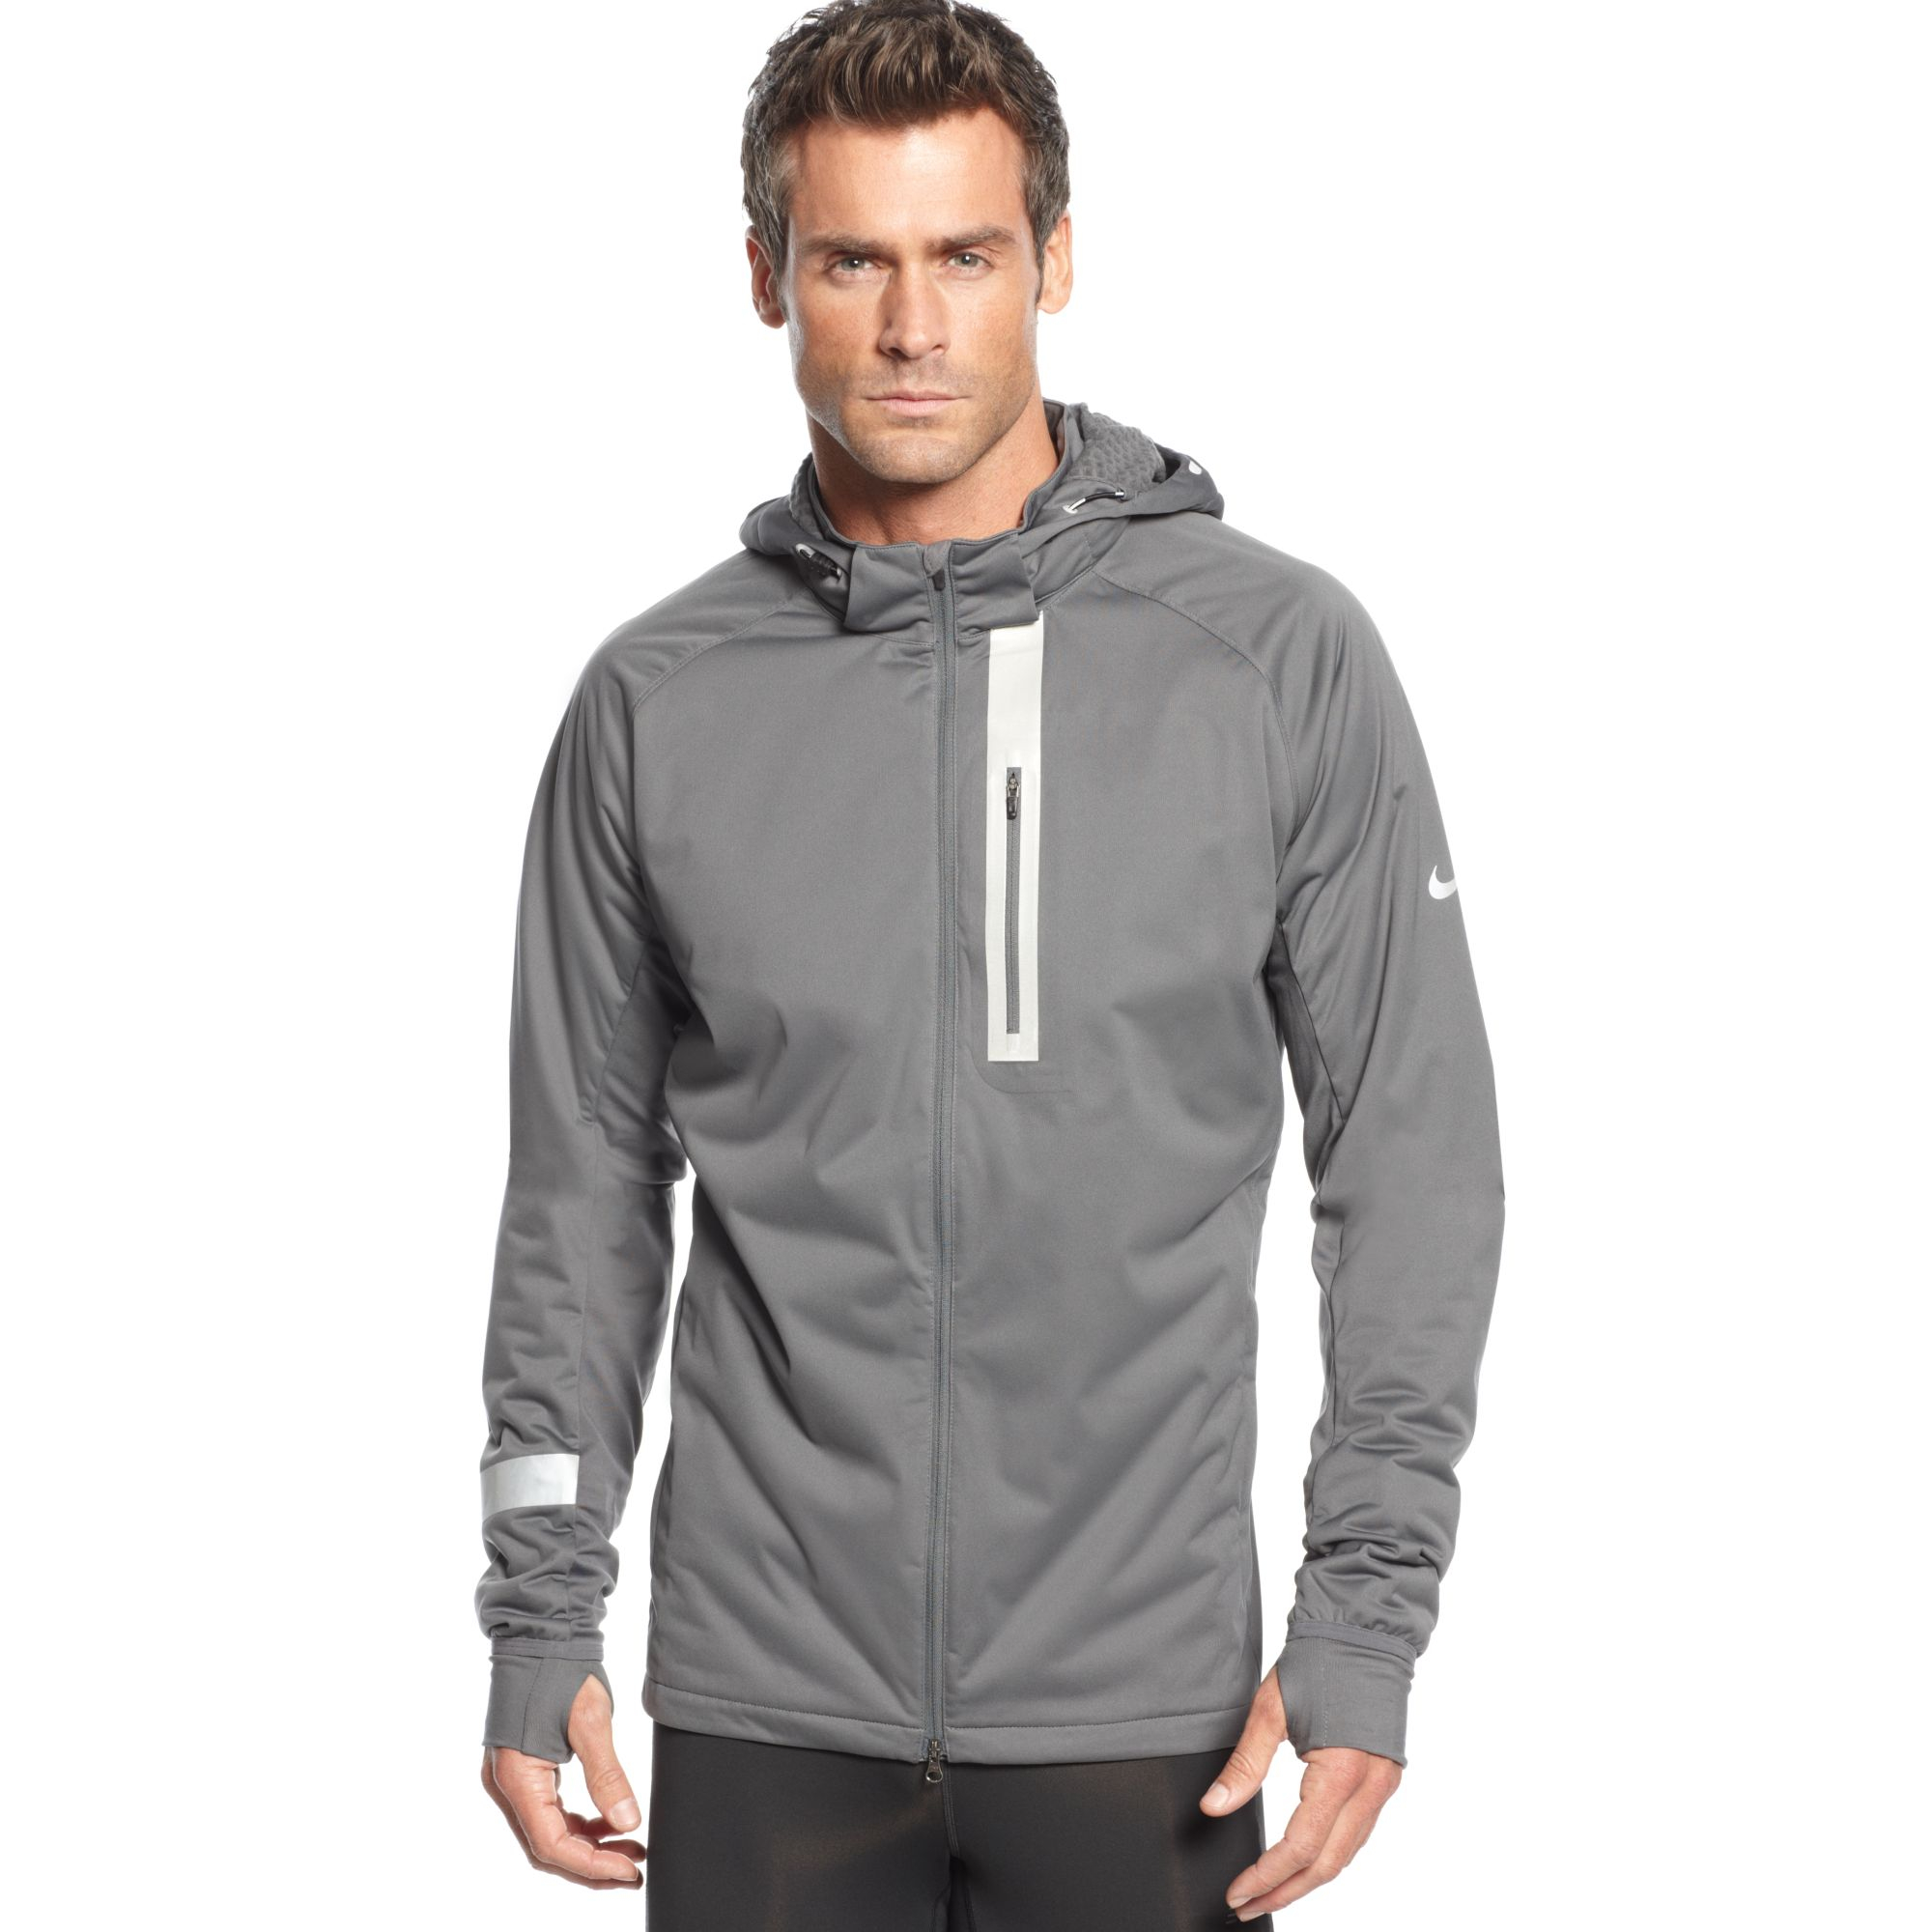 65a0df47b194 Lyst - Nike Element Shield Max Hooded Jacket in Gray for Men